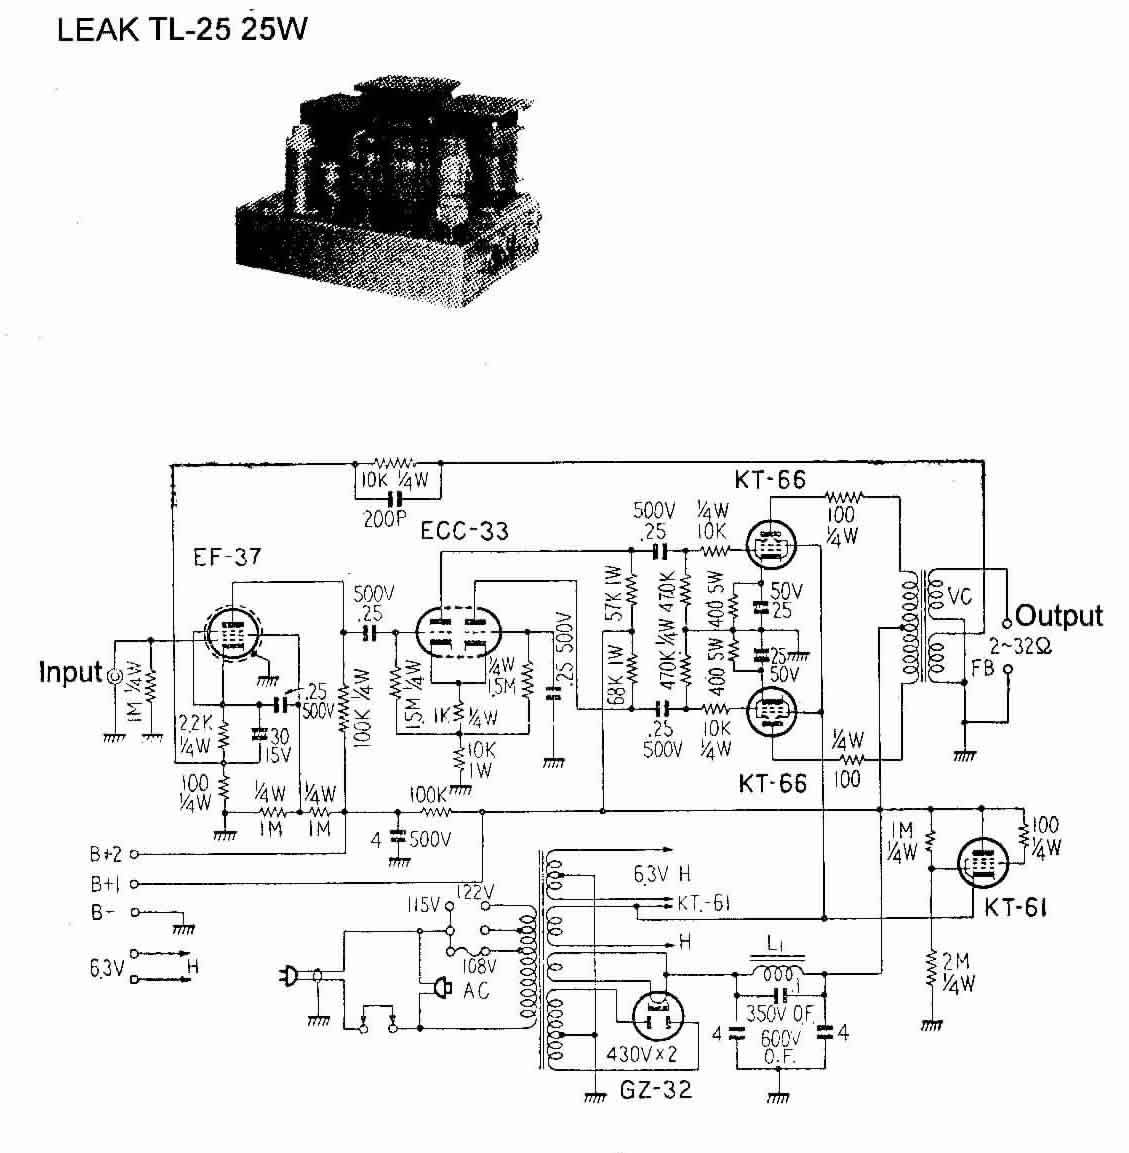 The Free Information Society Leak Tl25 Electronic Circuit Circuits Diagrams Design Projects Schematics Schematic